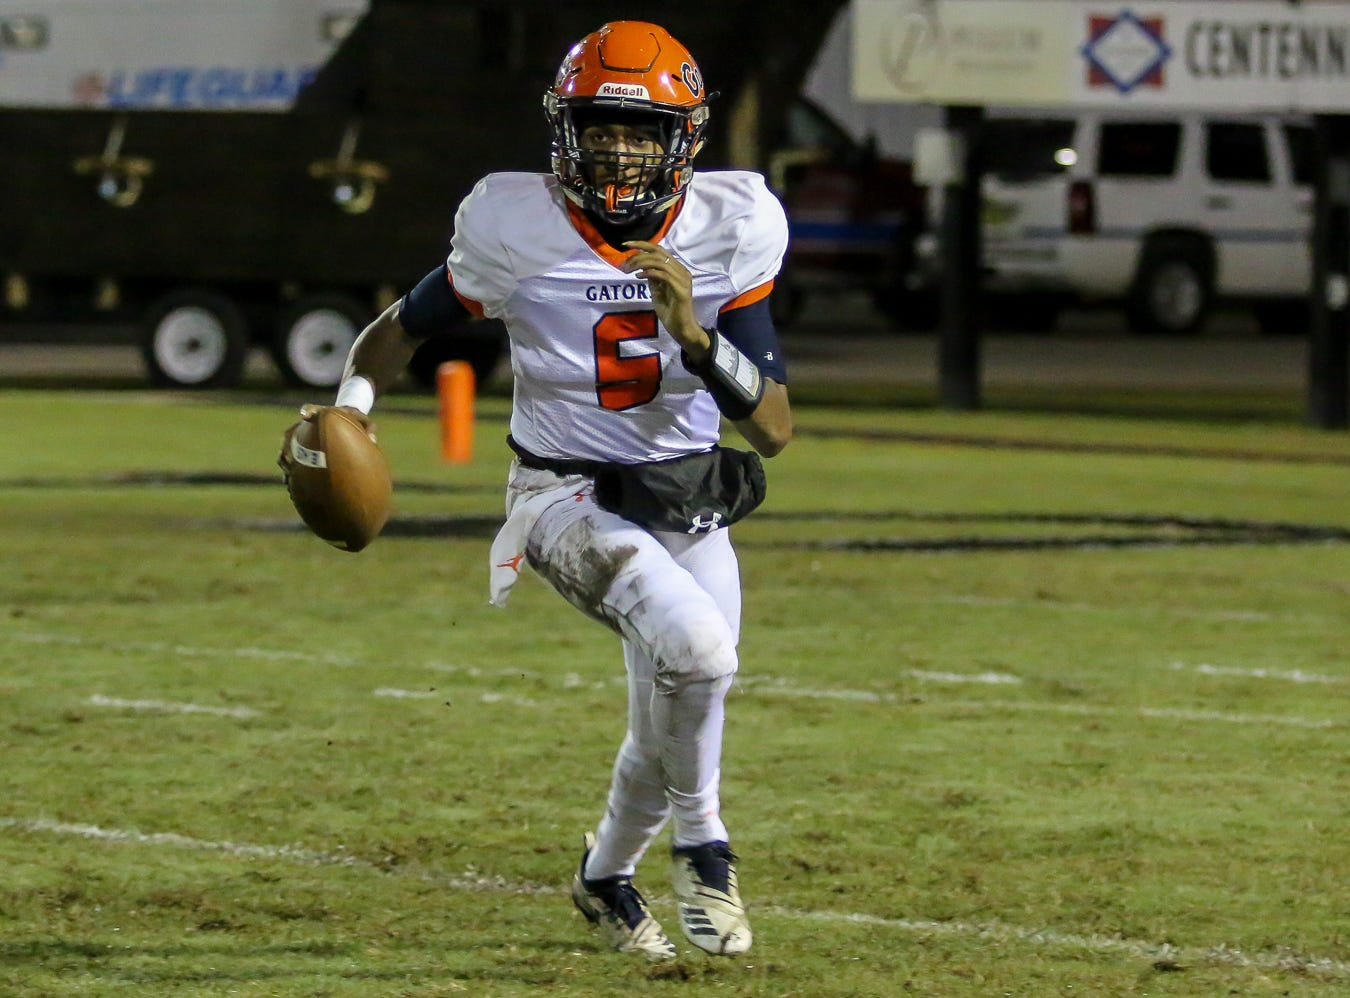 Escambia quarterback AV Smith (5) can't find an open receiver and runs toward the sideline against the Raiders in the Region 1-6A Semifinal game at Navarre High School on Friday, November 16, 2018.